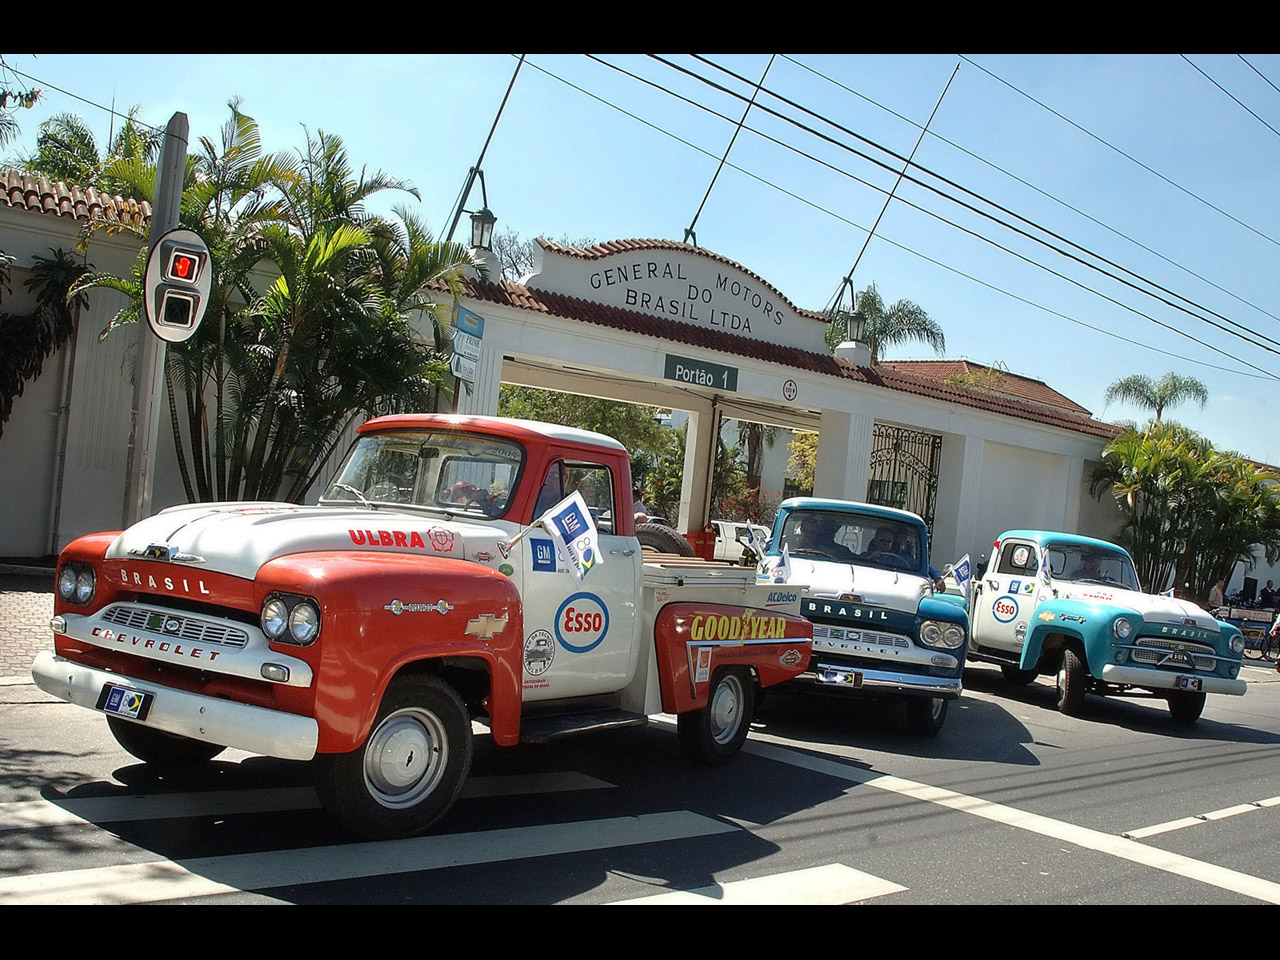 1960 Chevrolet Brasil Pickup Truck Expedition Setting Out 1280x960jpg 1280x960